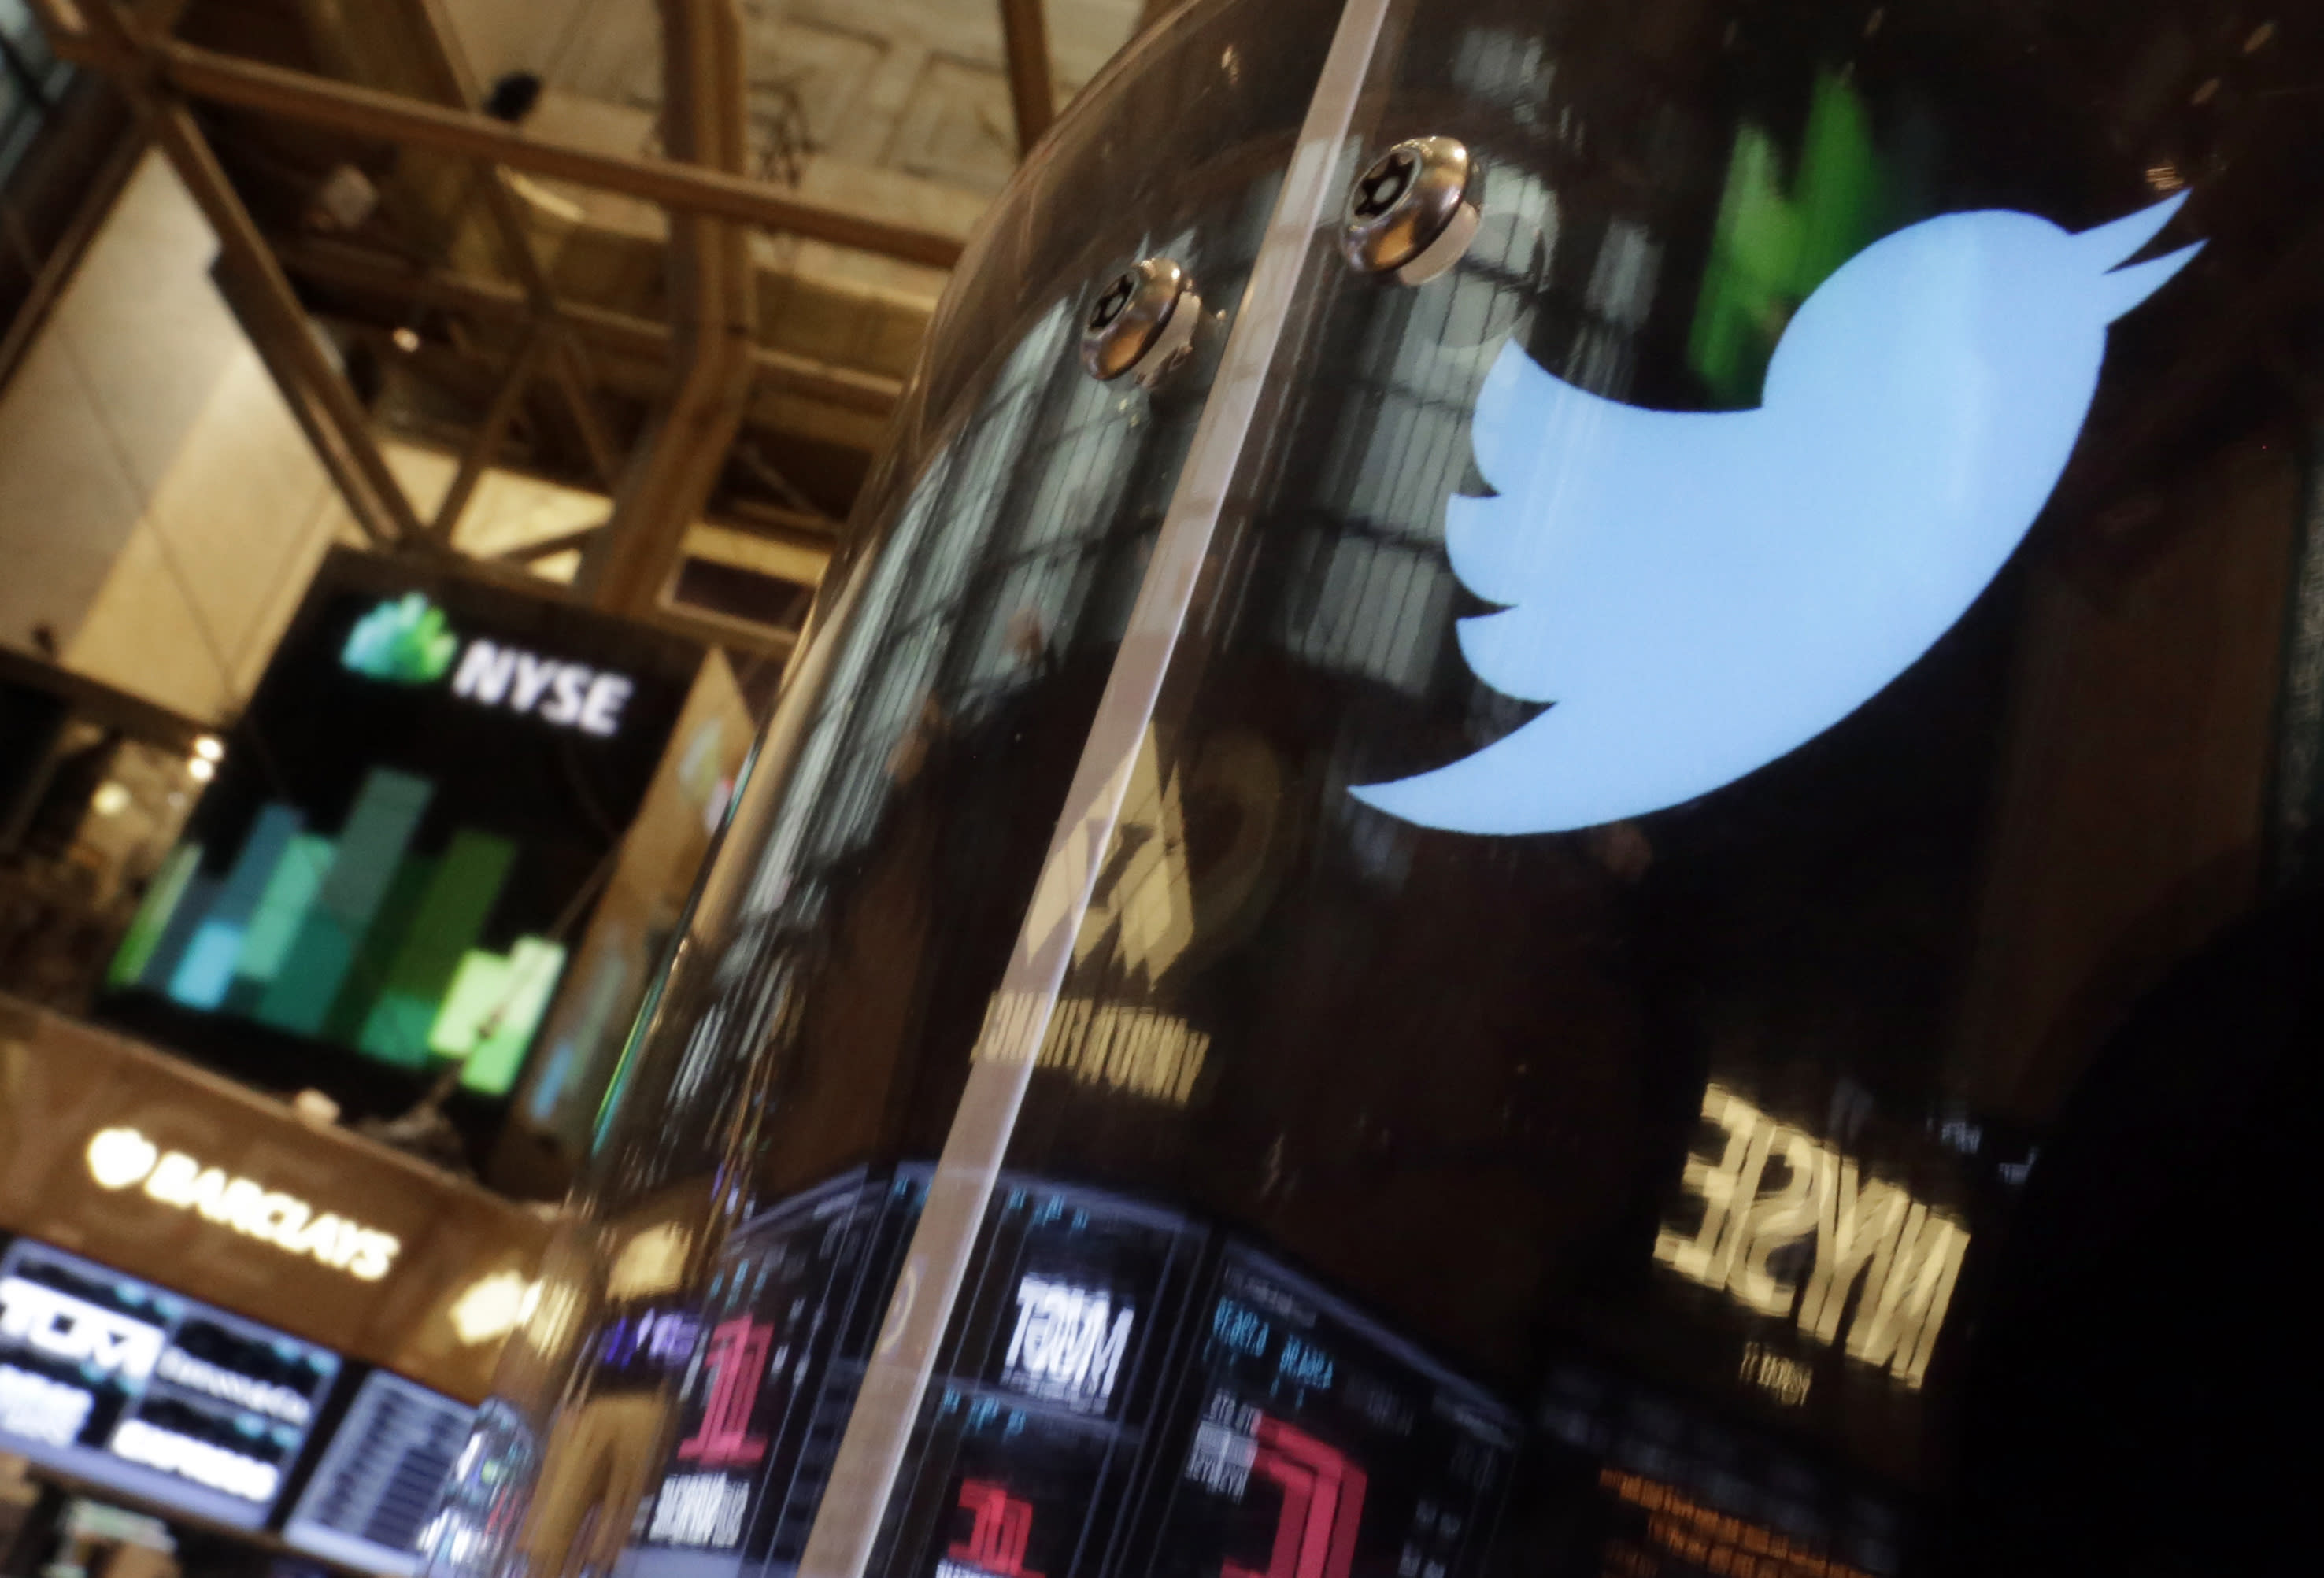 Twitter tries to lure in users as it searches for CEO